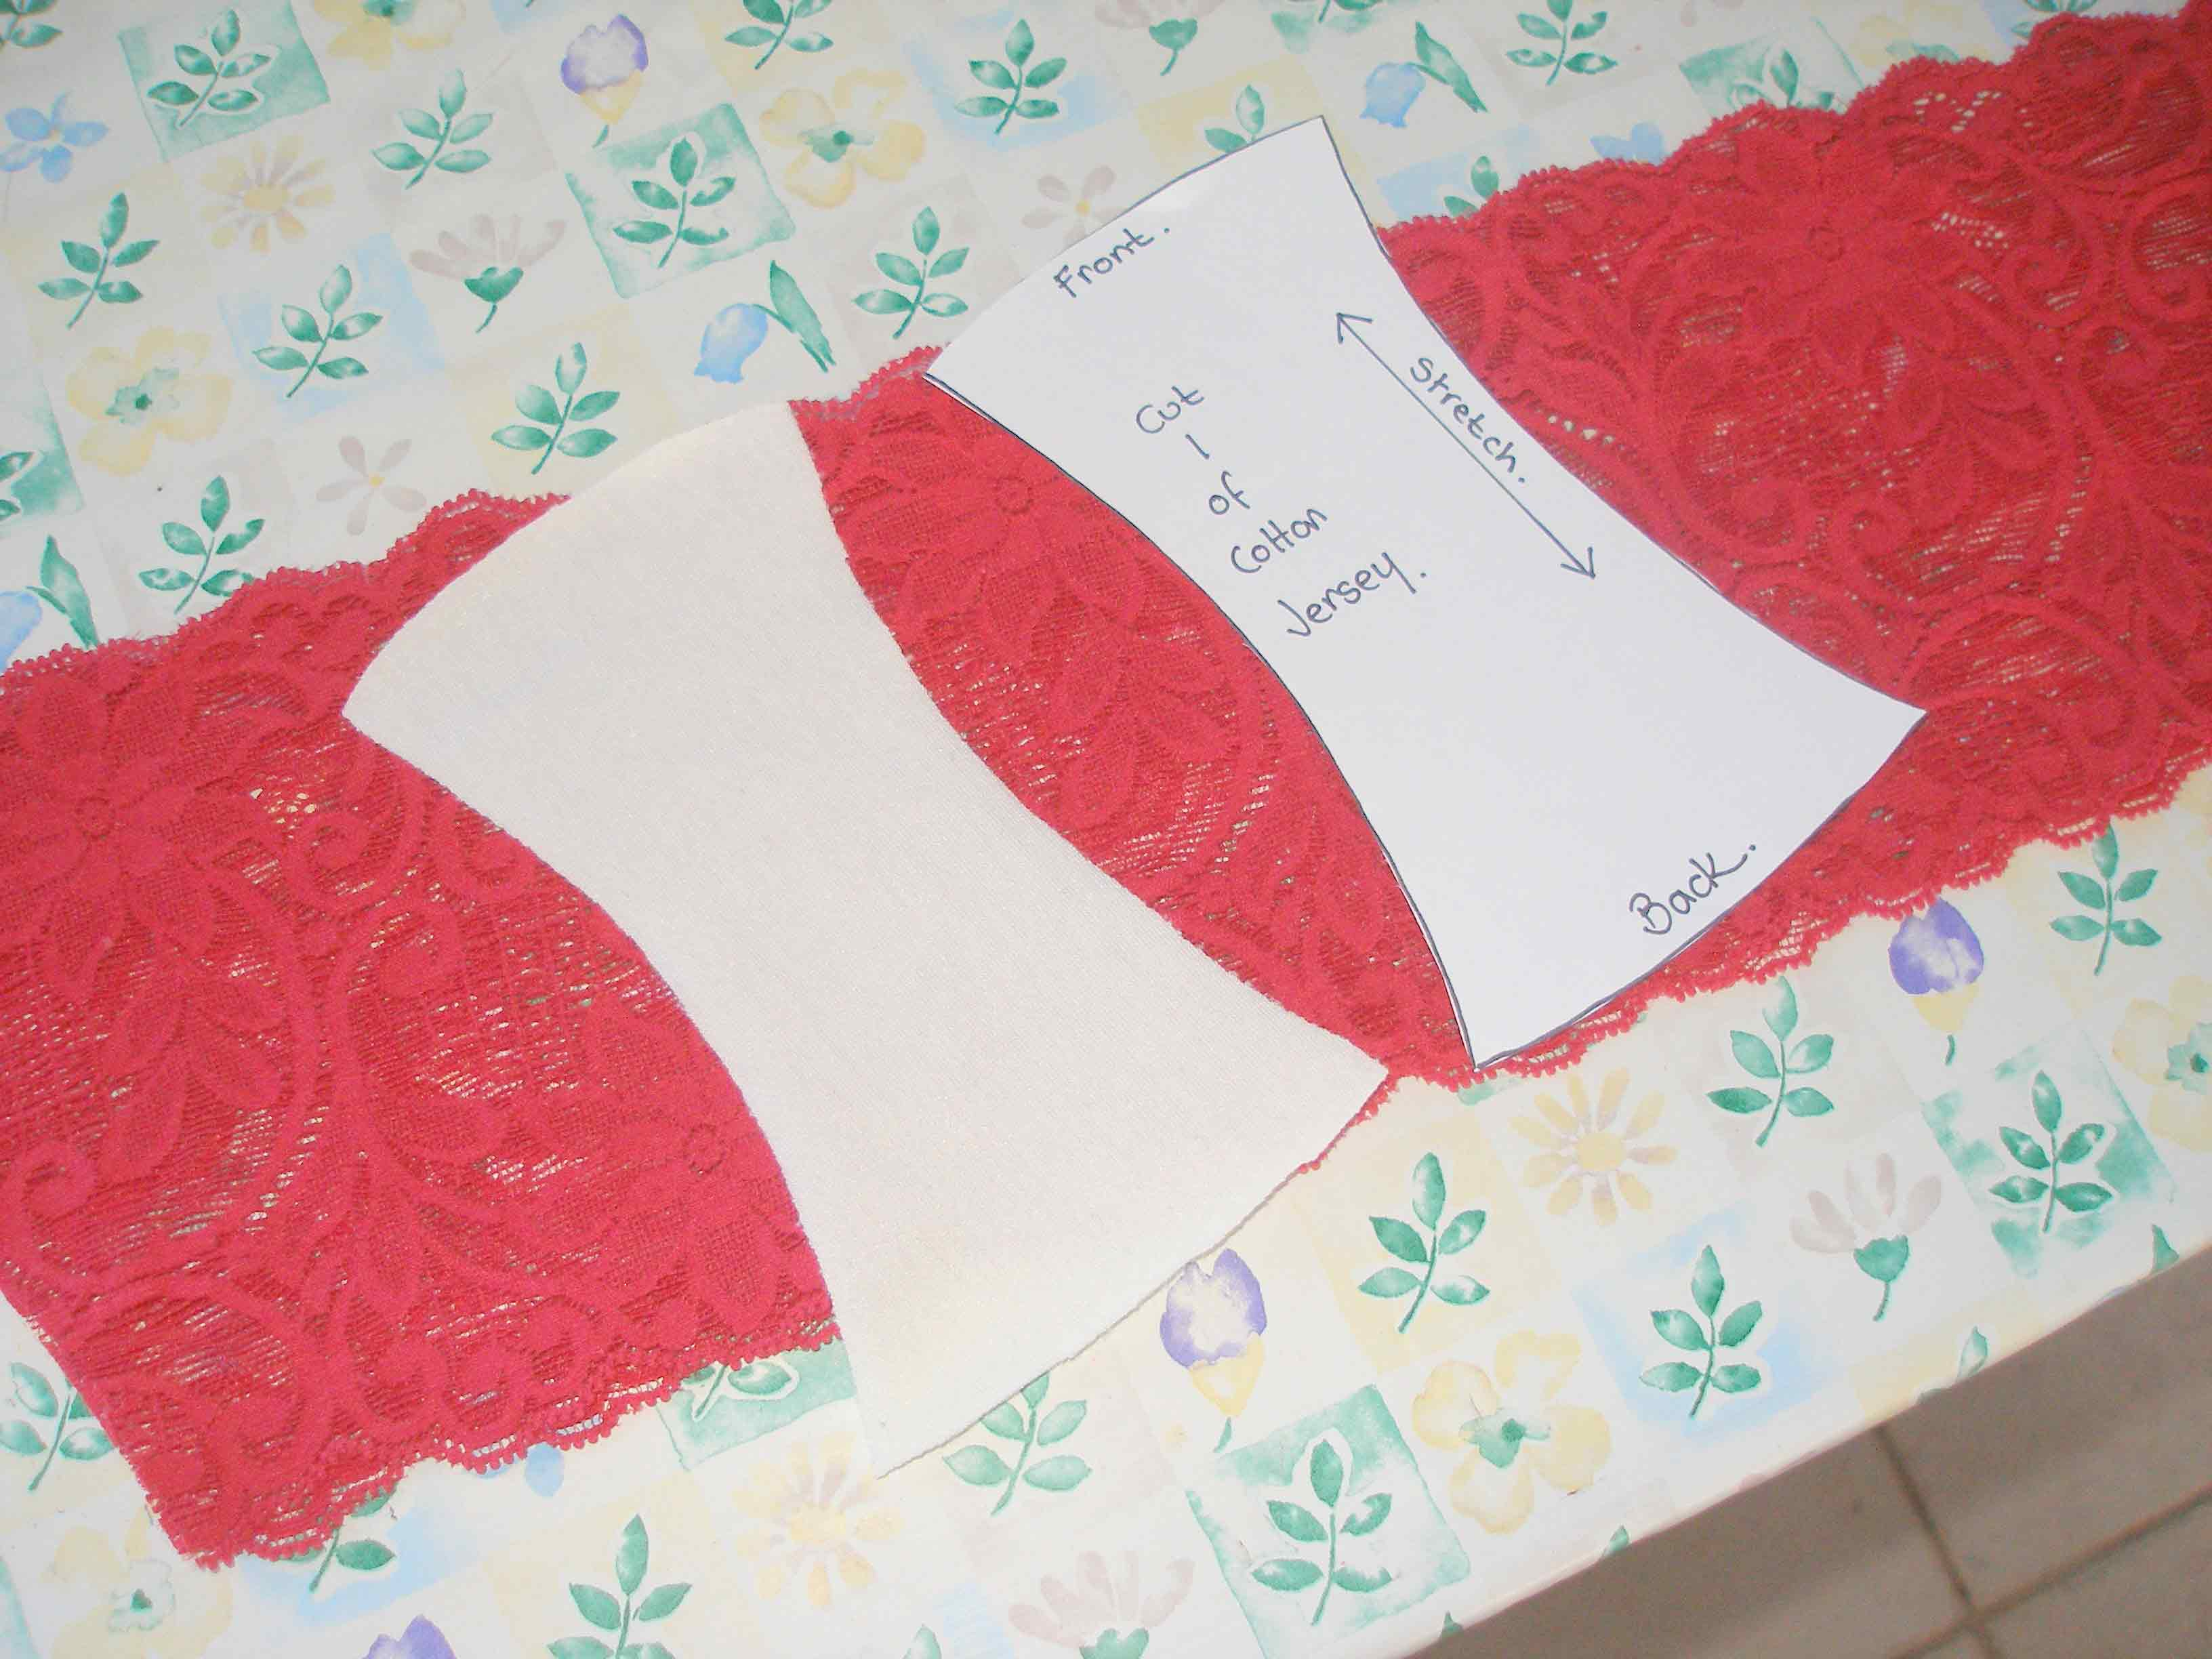 So Sew Easy - sew your own undies - free pattern